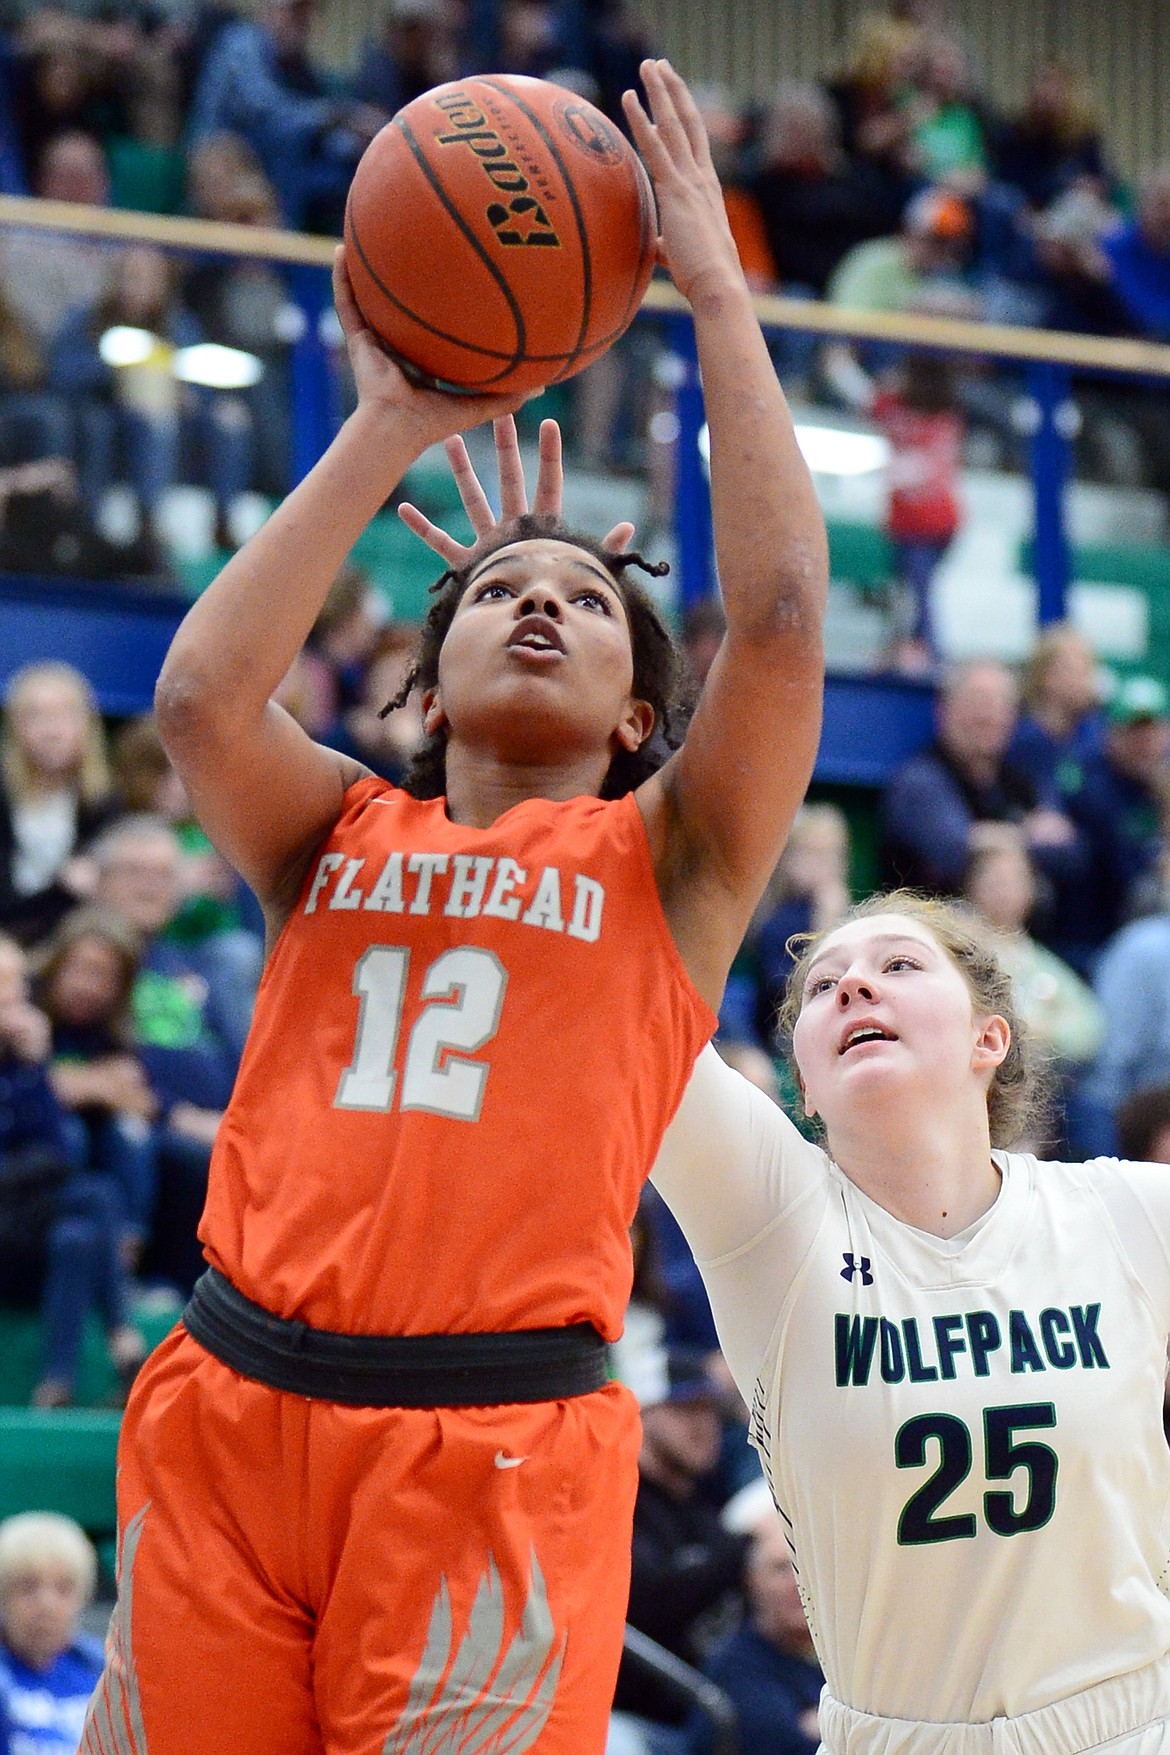 Flathead's Akilah Kubi (12) drives to the hoop against Glacier's Emma Anderson (25) during a crosstown matchup at Glacier High School on Friday. (Casey Kreider/Daily Inter Lake)